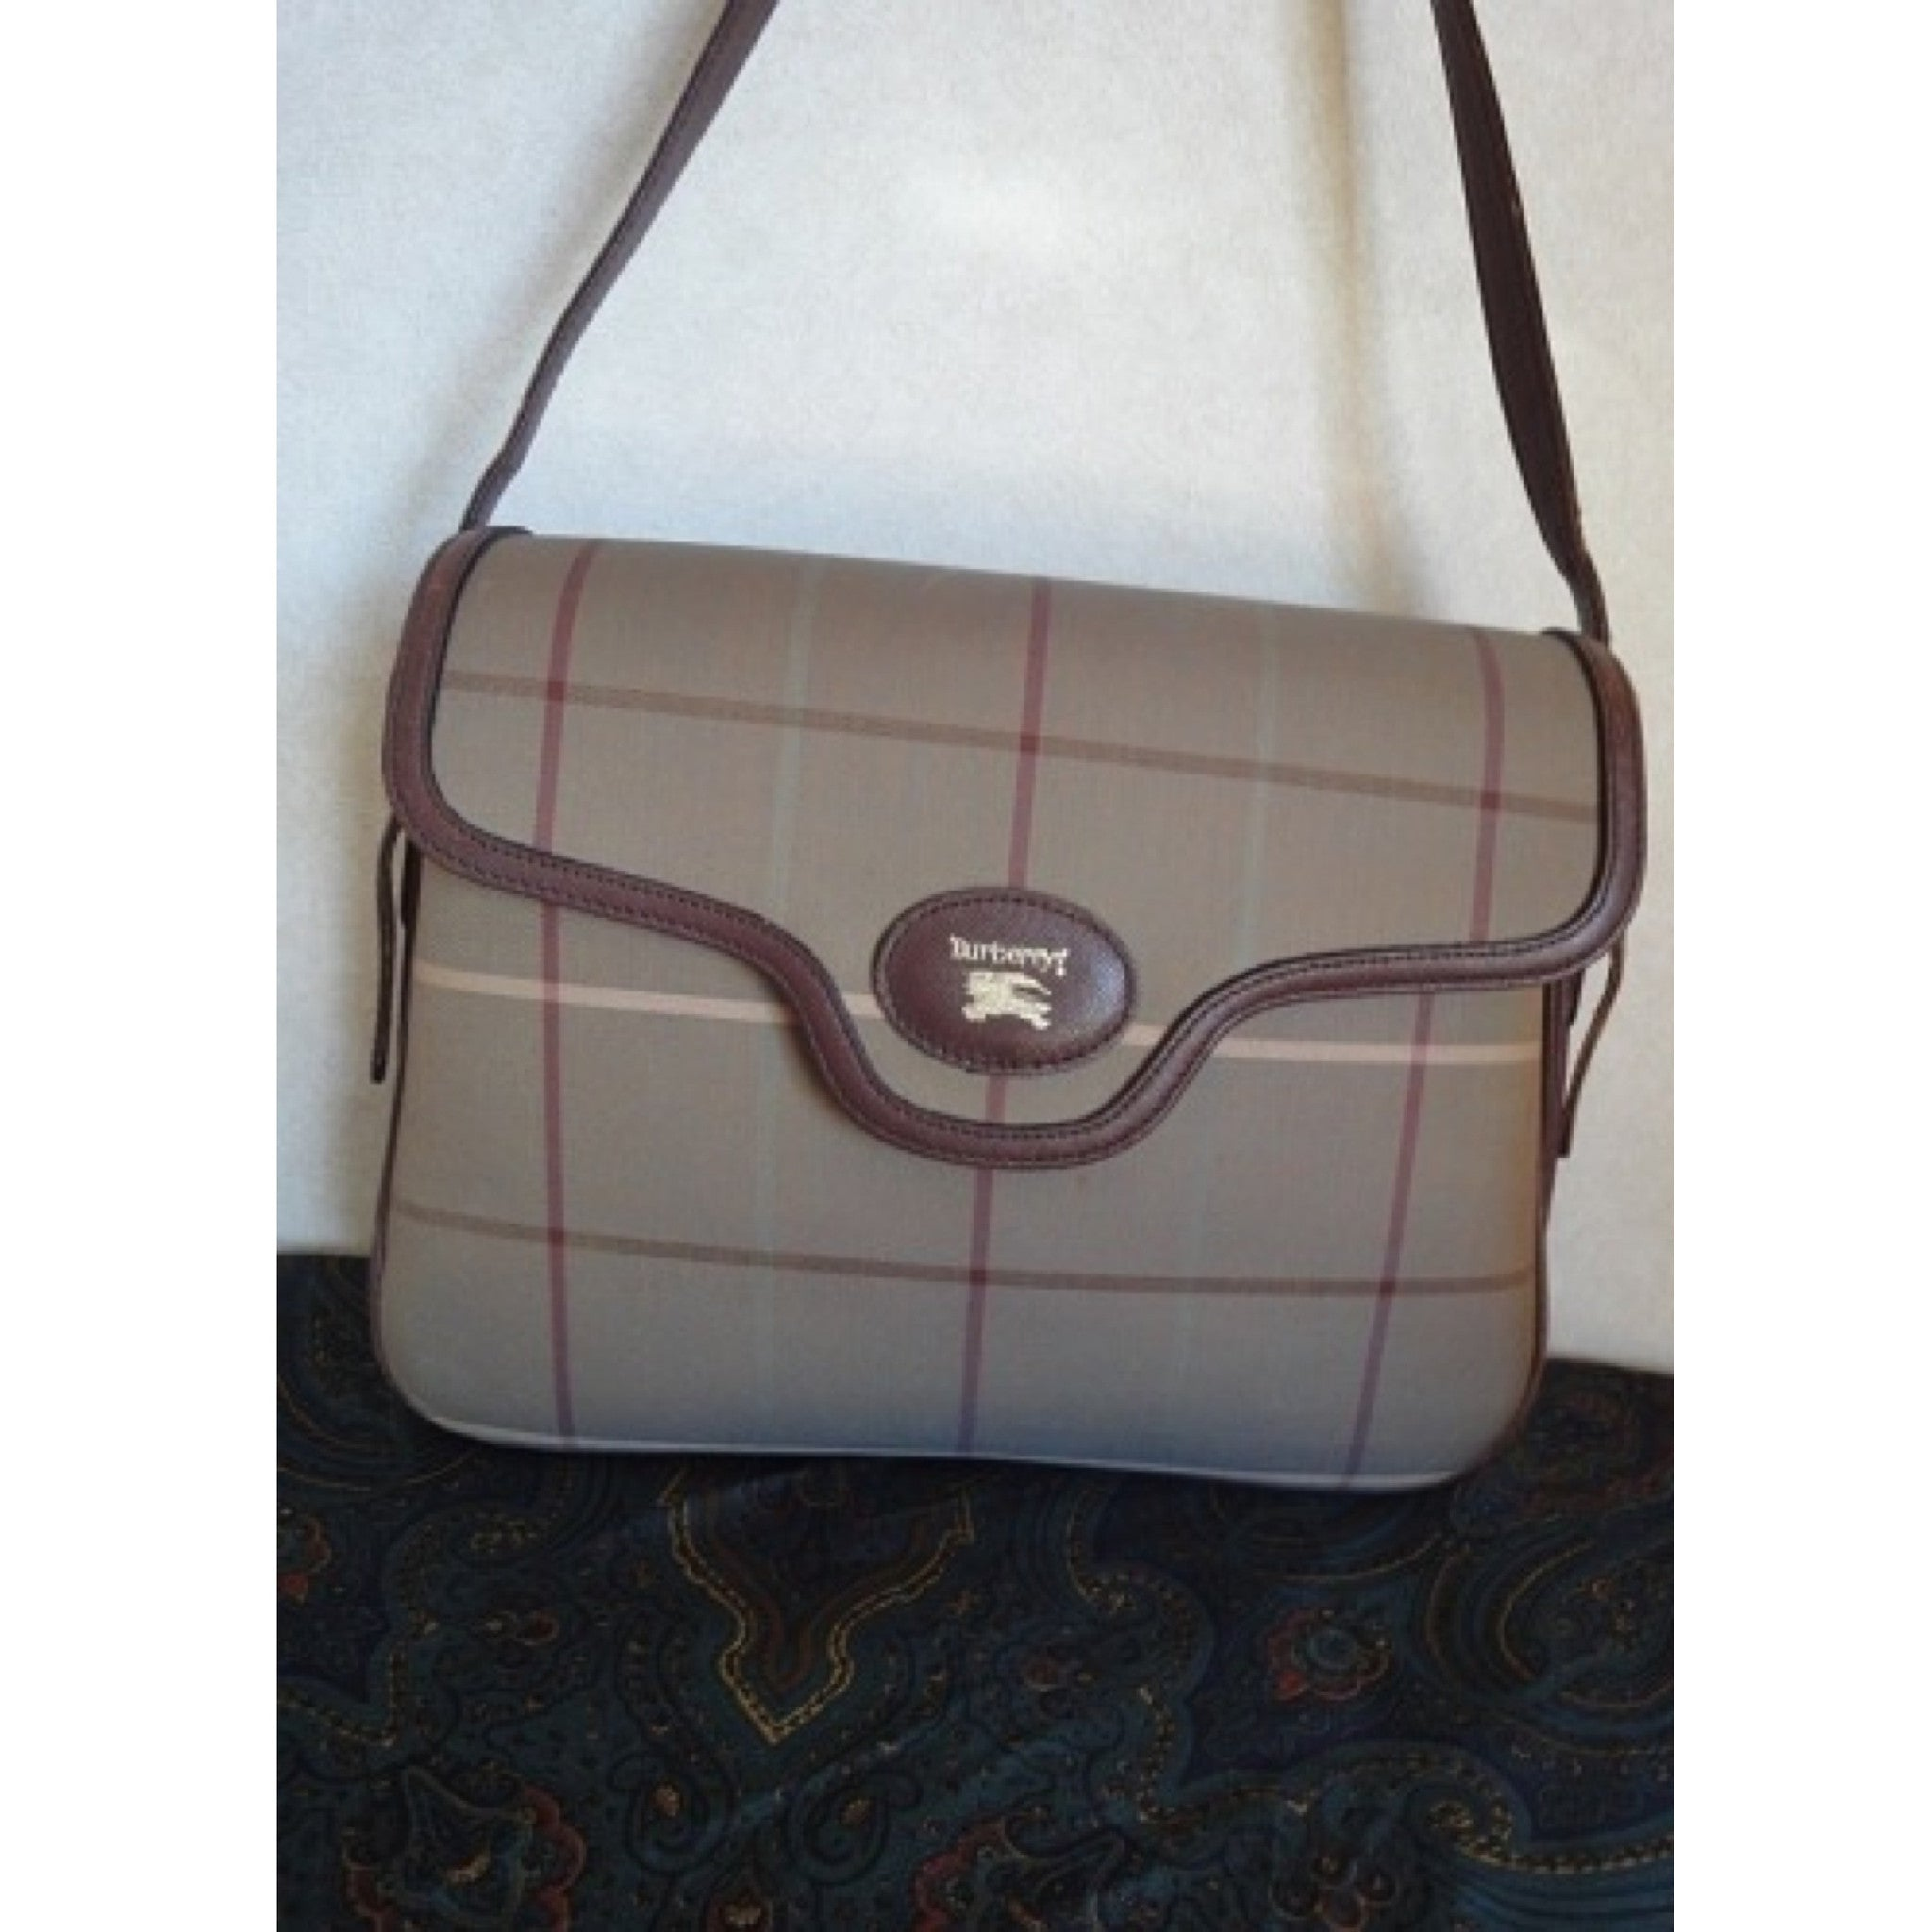 SOLD OUT: Vintage Burberry check pattern shoulder bag